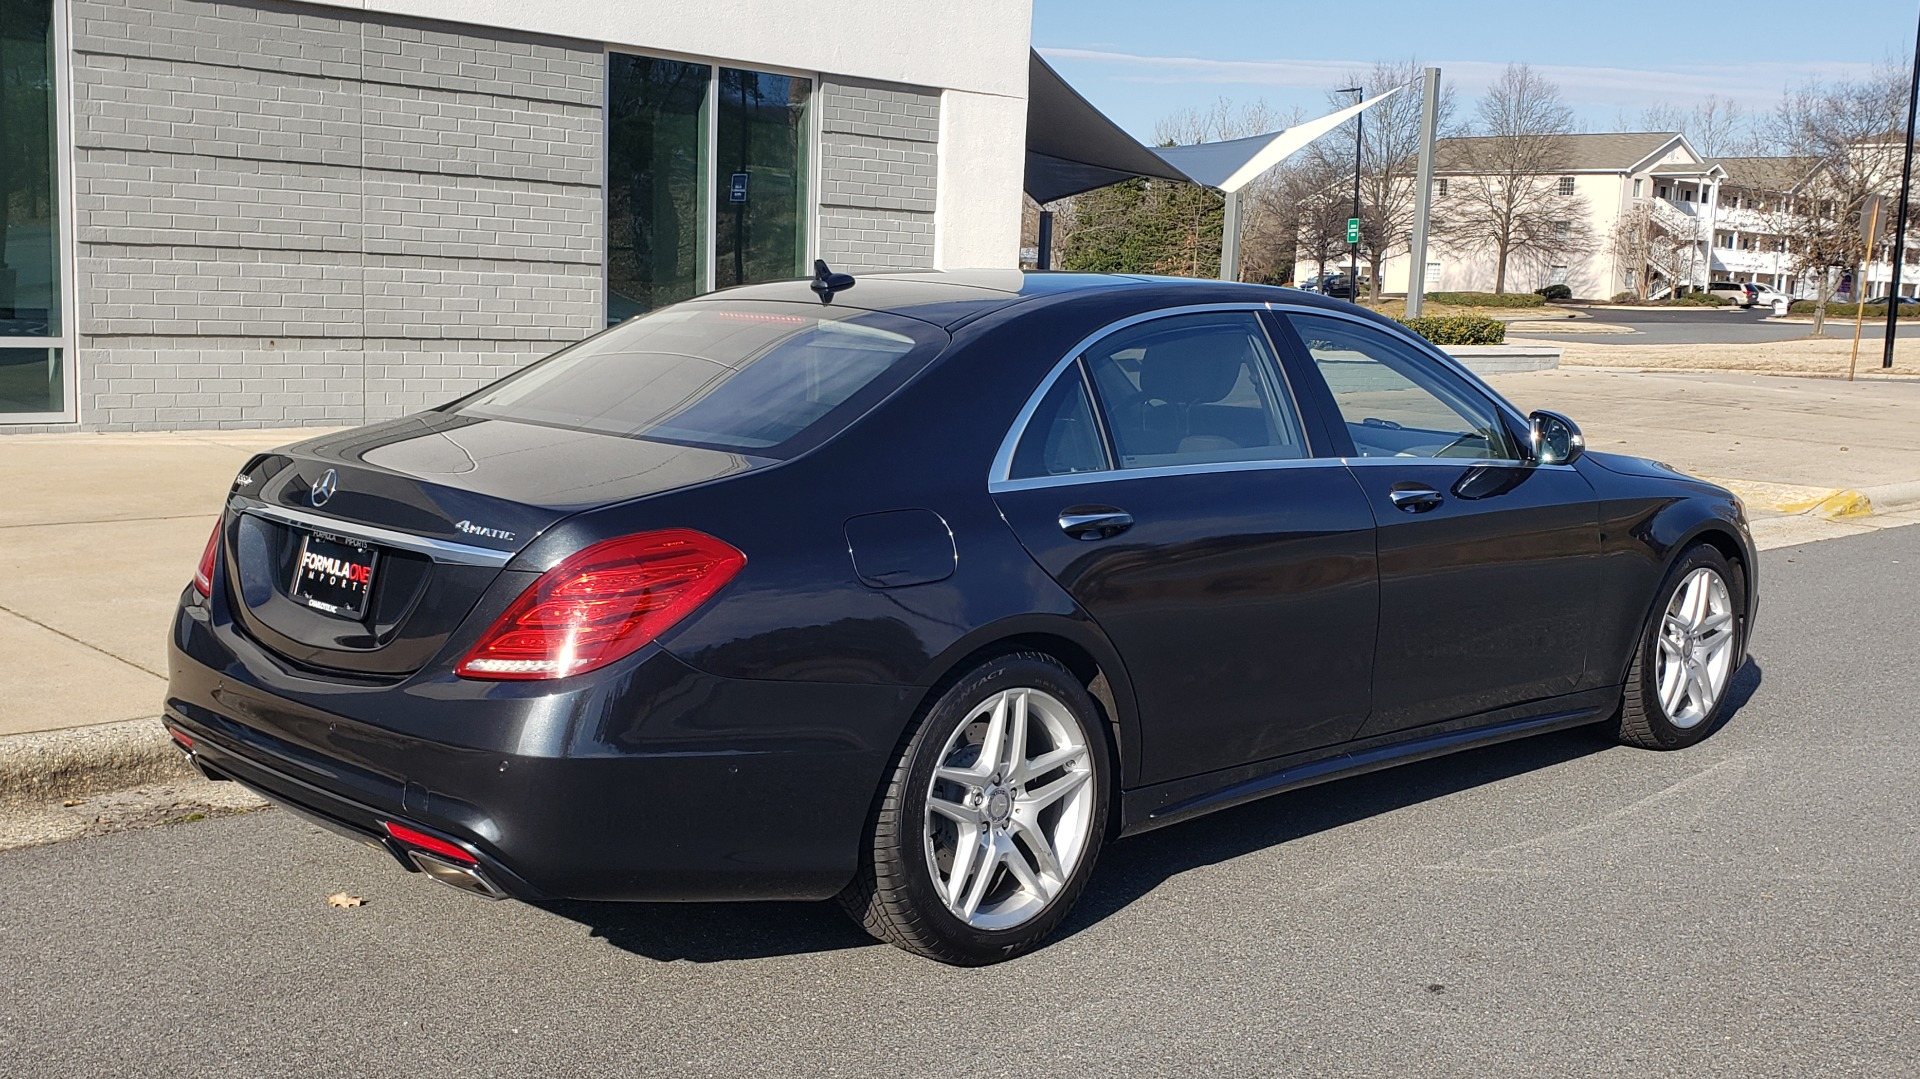 Used 2015 Mercedes-Benz S-CLASS S 550 PREMIUM / SPORT / WARMTH&COMFORT / DRVR ASST / SRND VIEW for sale Sold at Formula Imports in Charlotte NC 28227 8